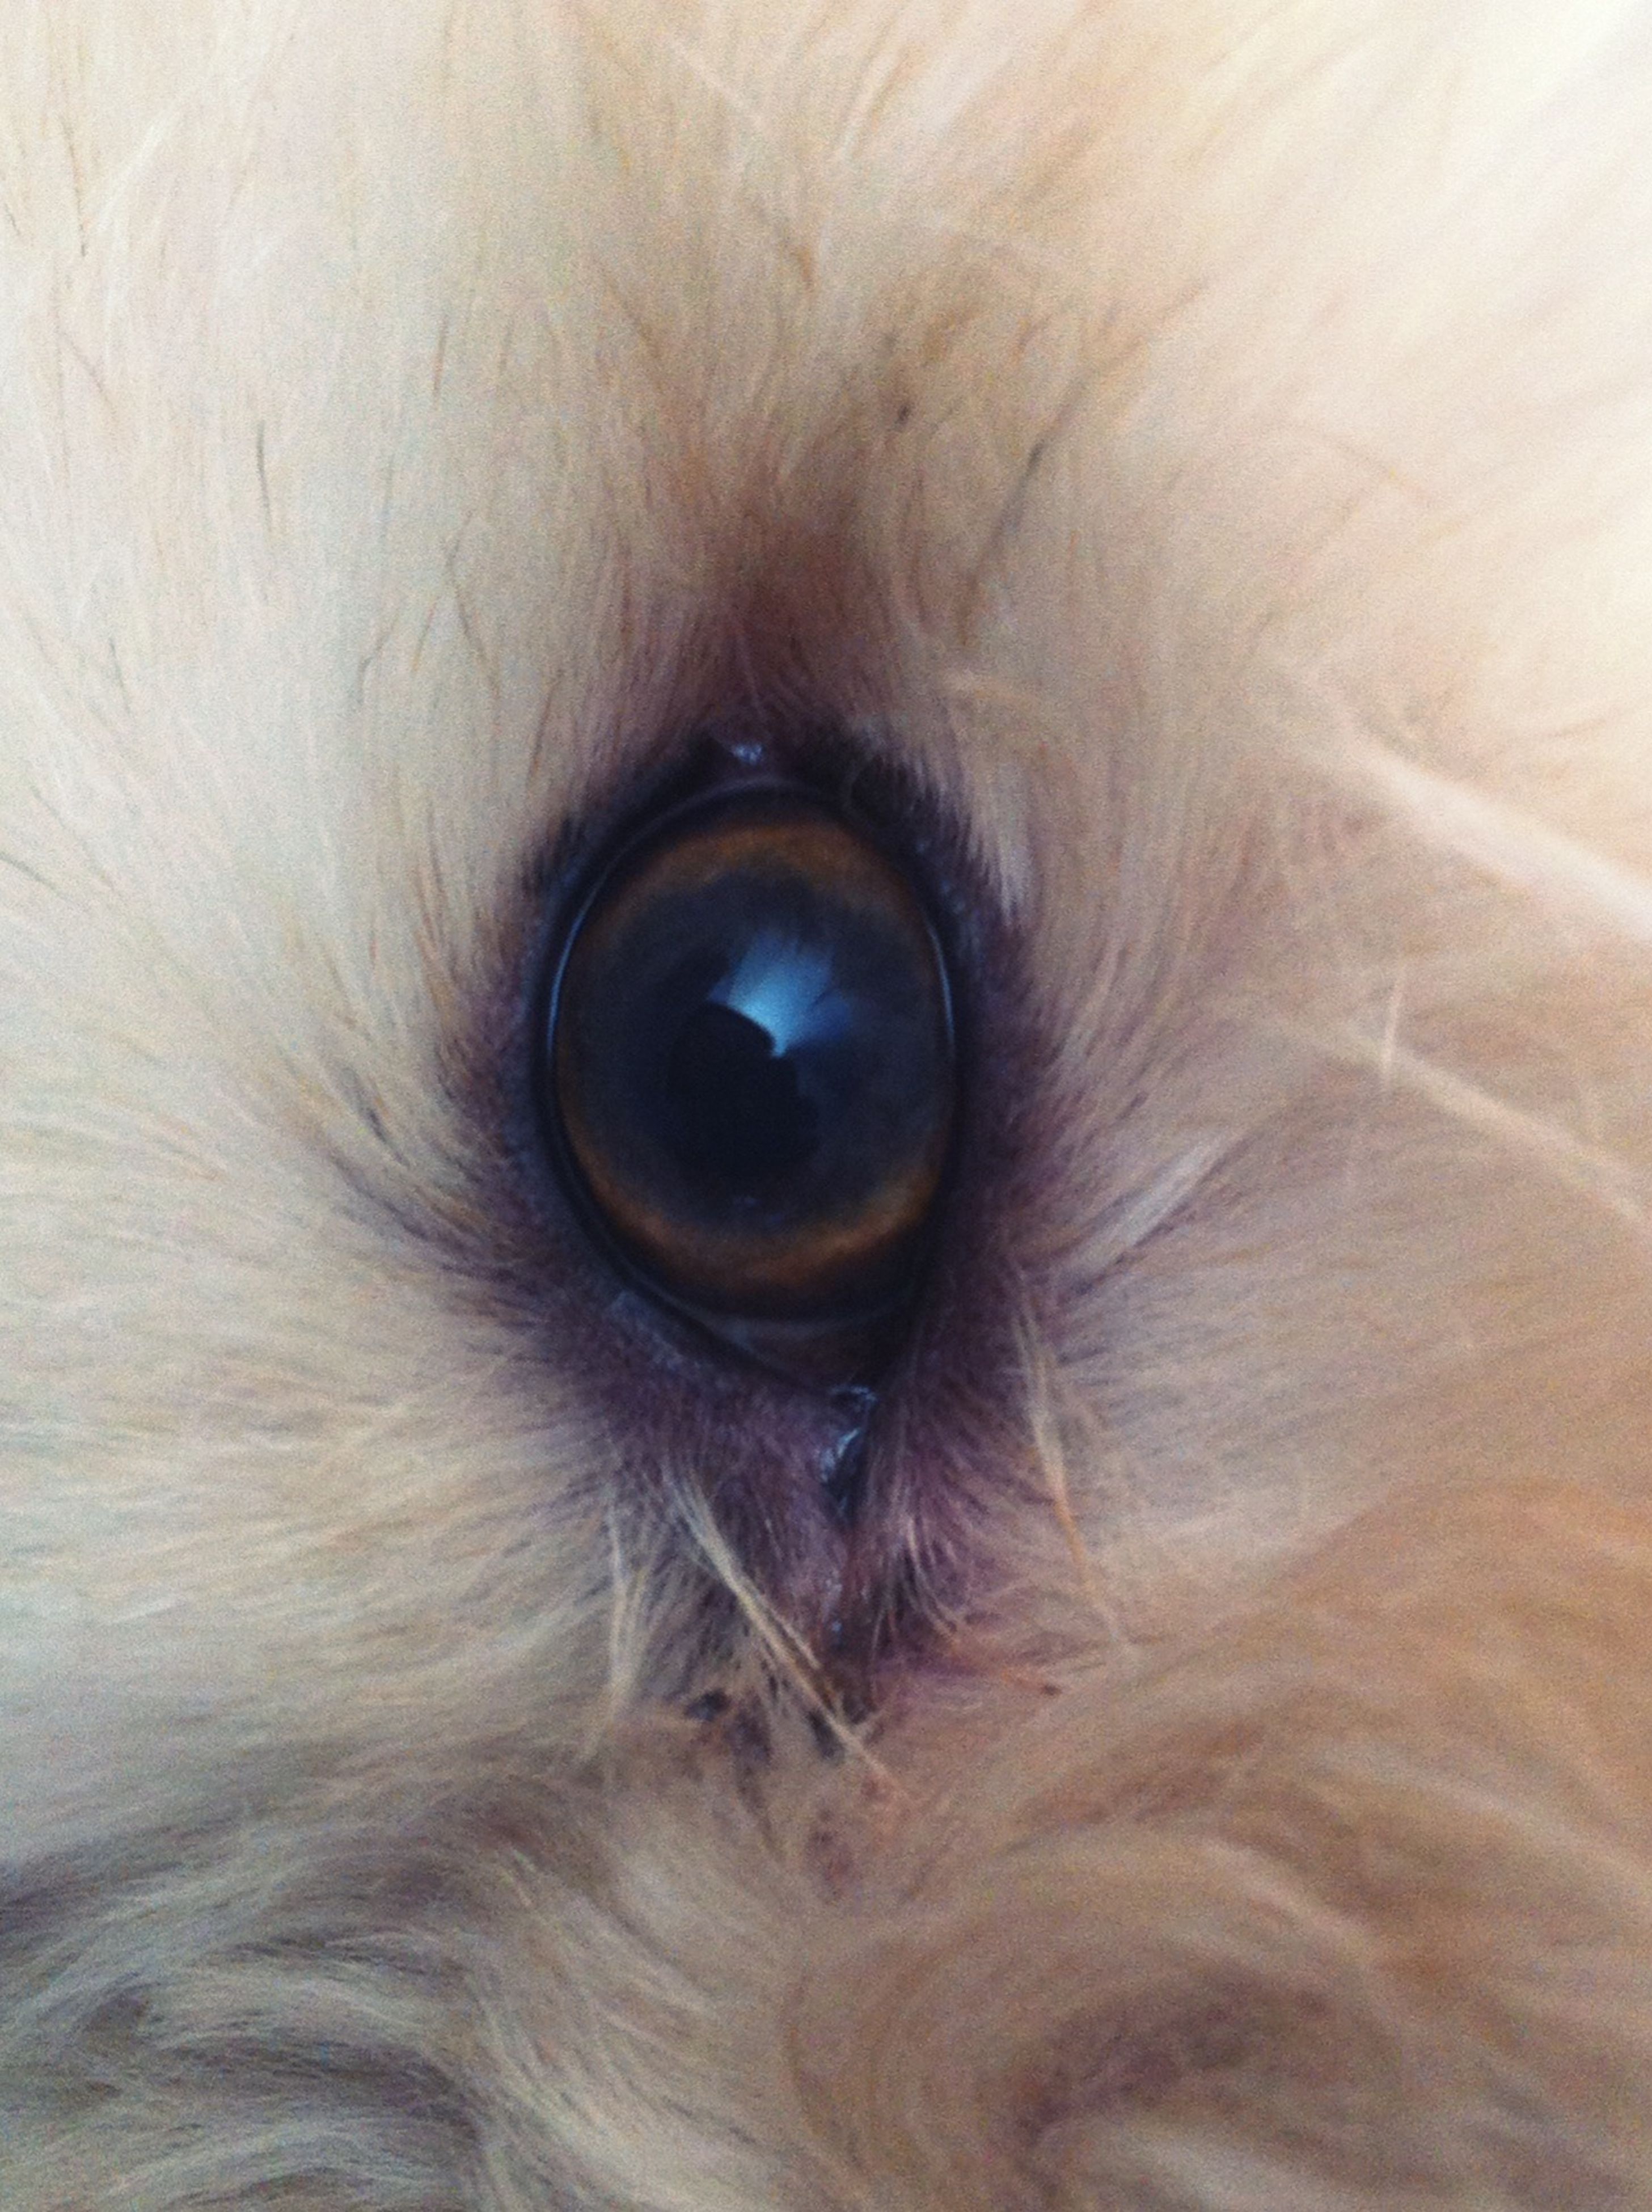 one animal, close-up, animal themes, full frame, extreme close-up, animal eye, backgrounds, animal body part, part of, animal head, human eye, portrait, extreme close up, looking at camera, pets, animal hair, sensory perception, domestic animals, detail, eyelash